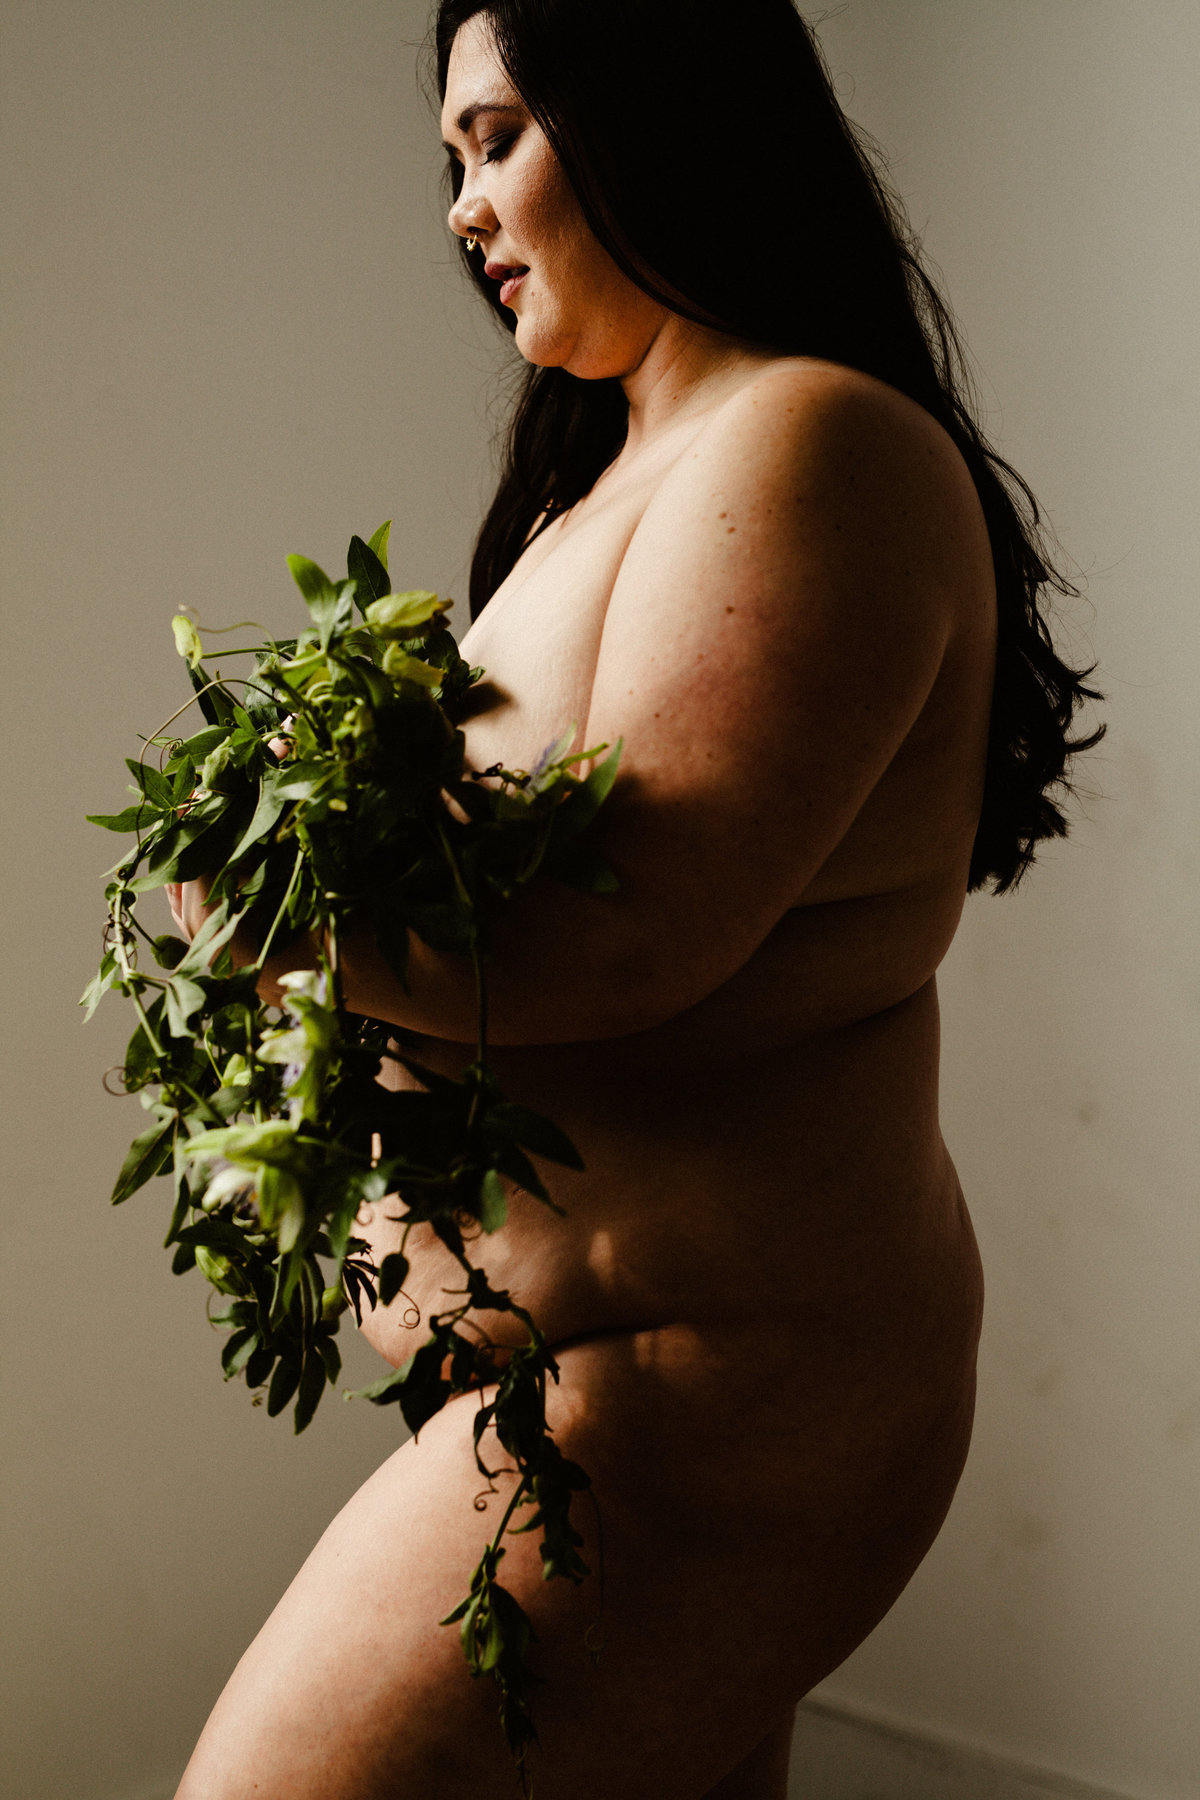 nude woman holds greenery arrangement in her arms